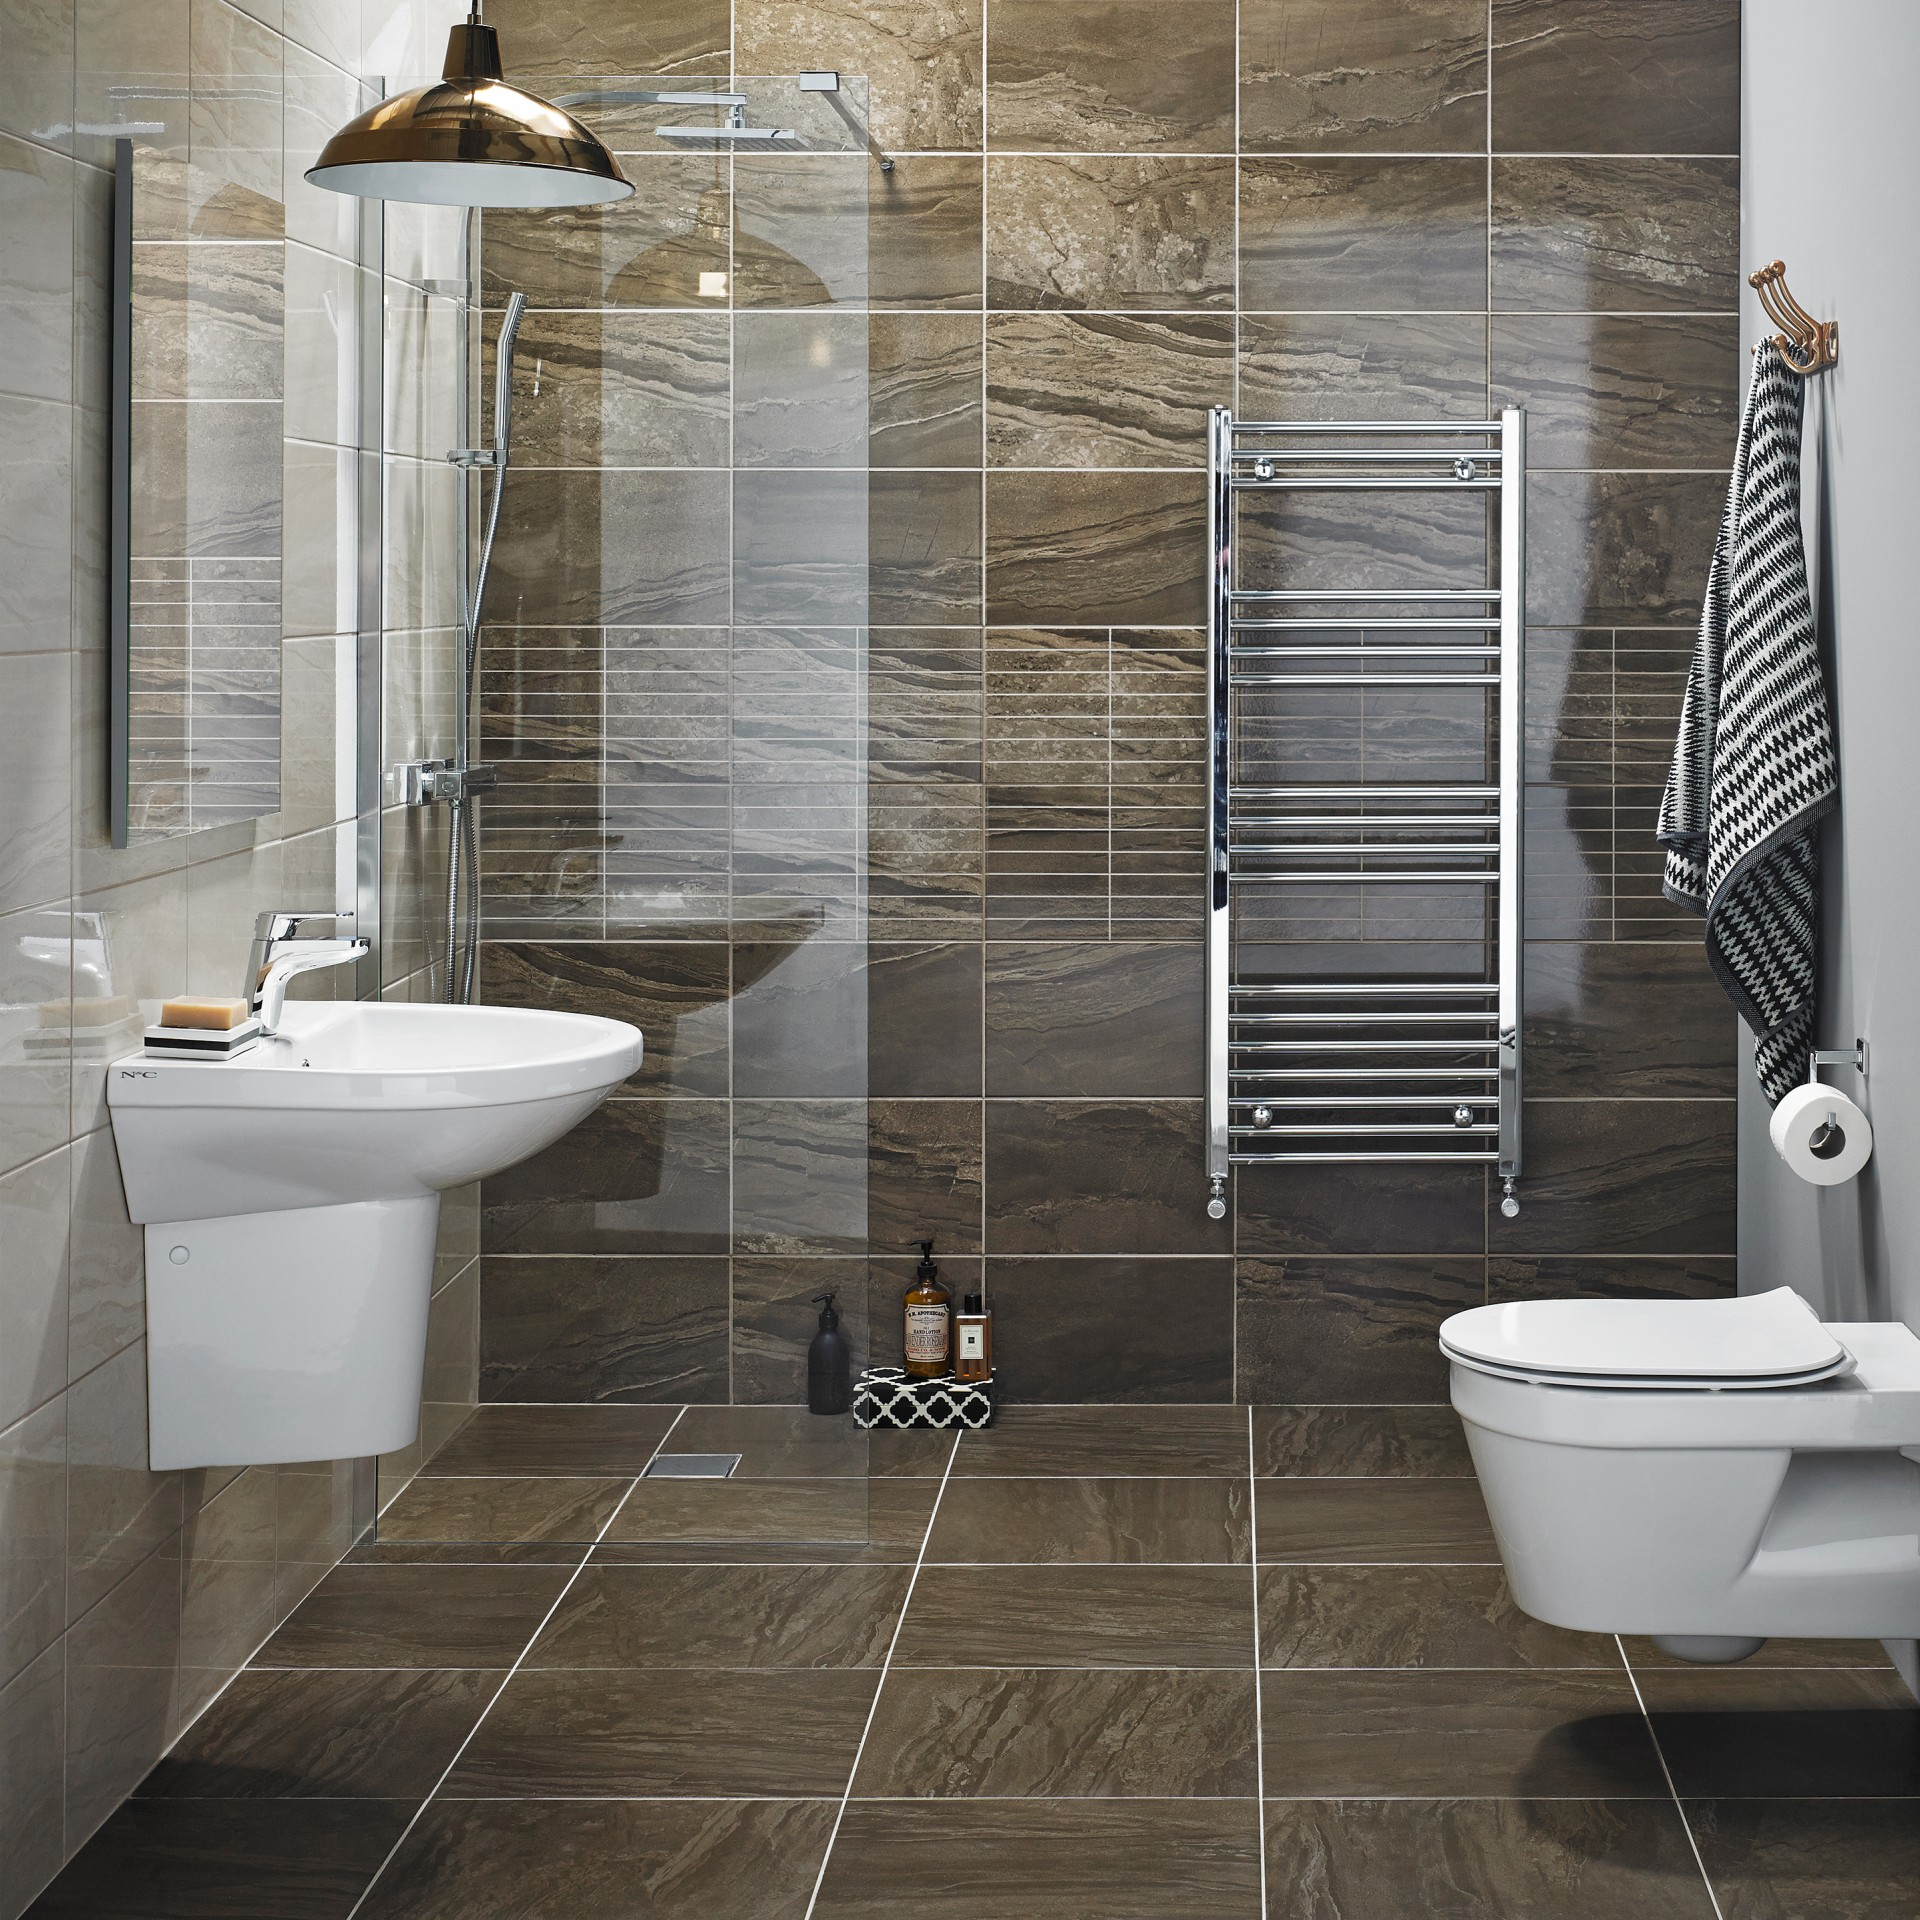 N&C Tiles and Bathrooms